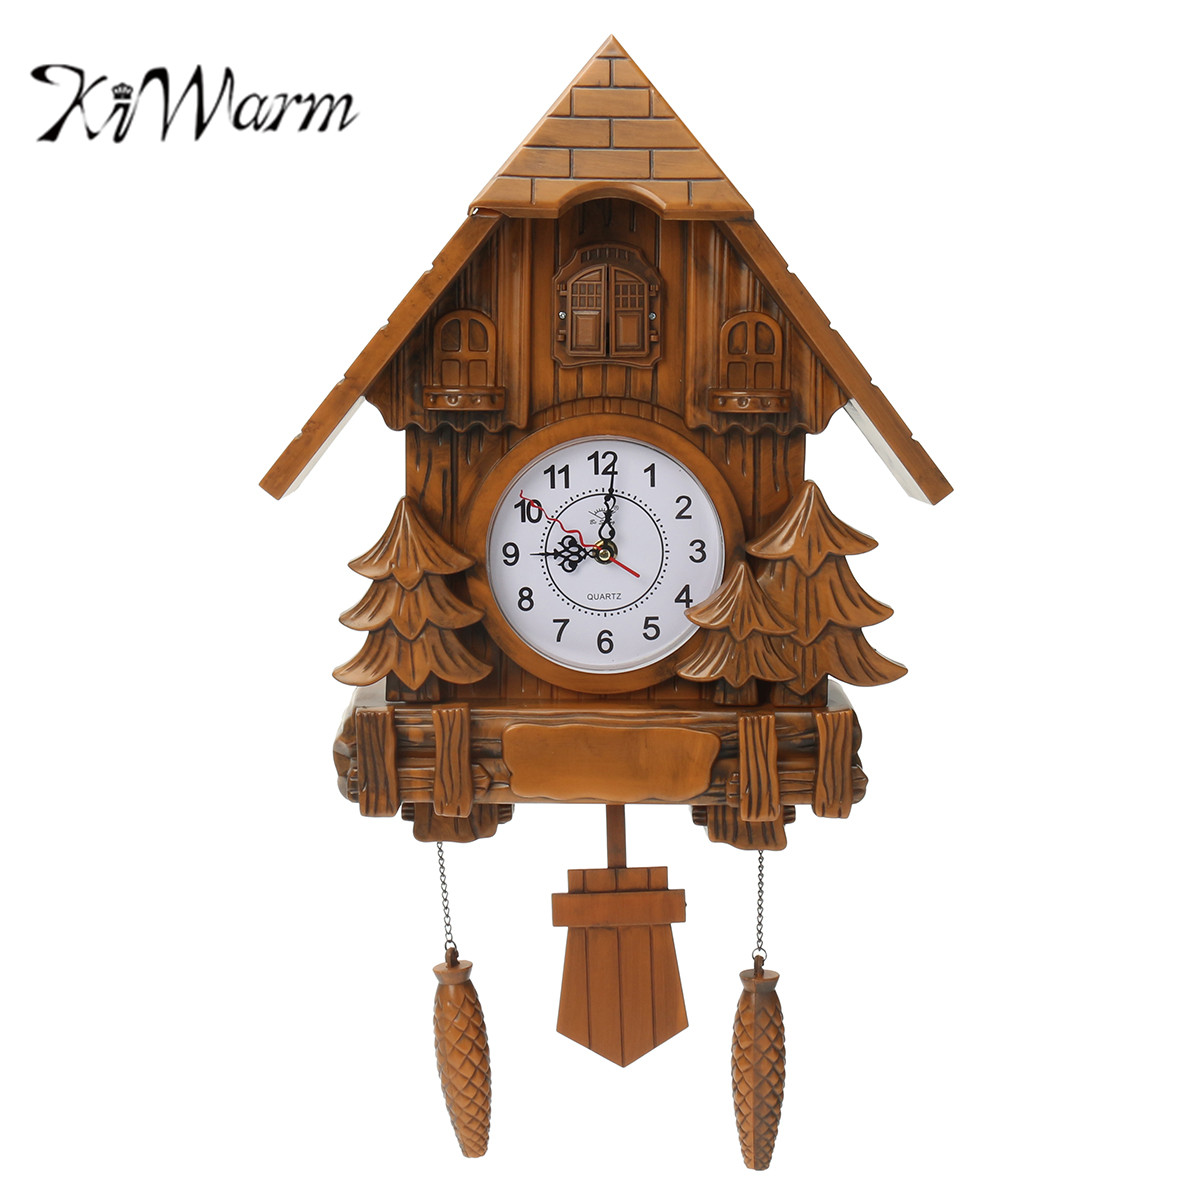 KiWarm Vintage Cuckoo Clock Forest Quartz Swing Wall Alarm Clock Handmade Crafts for Home Room Shop Hanging Decoration Gift